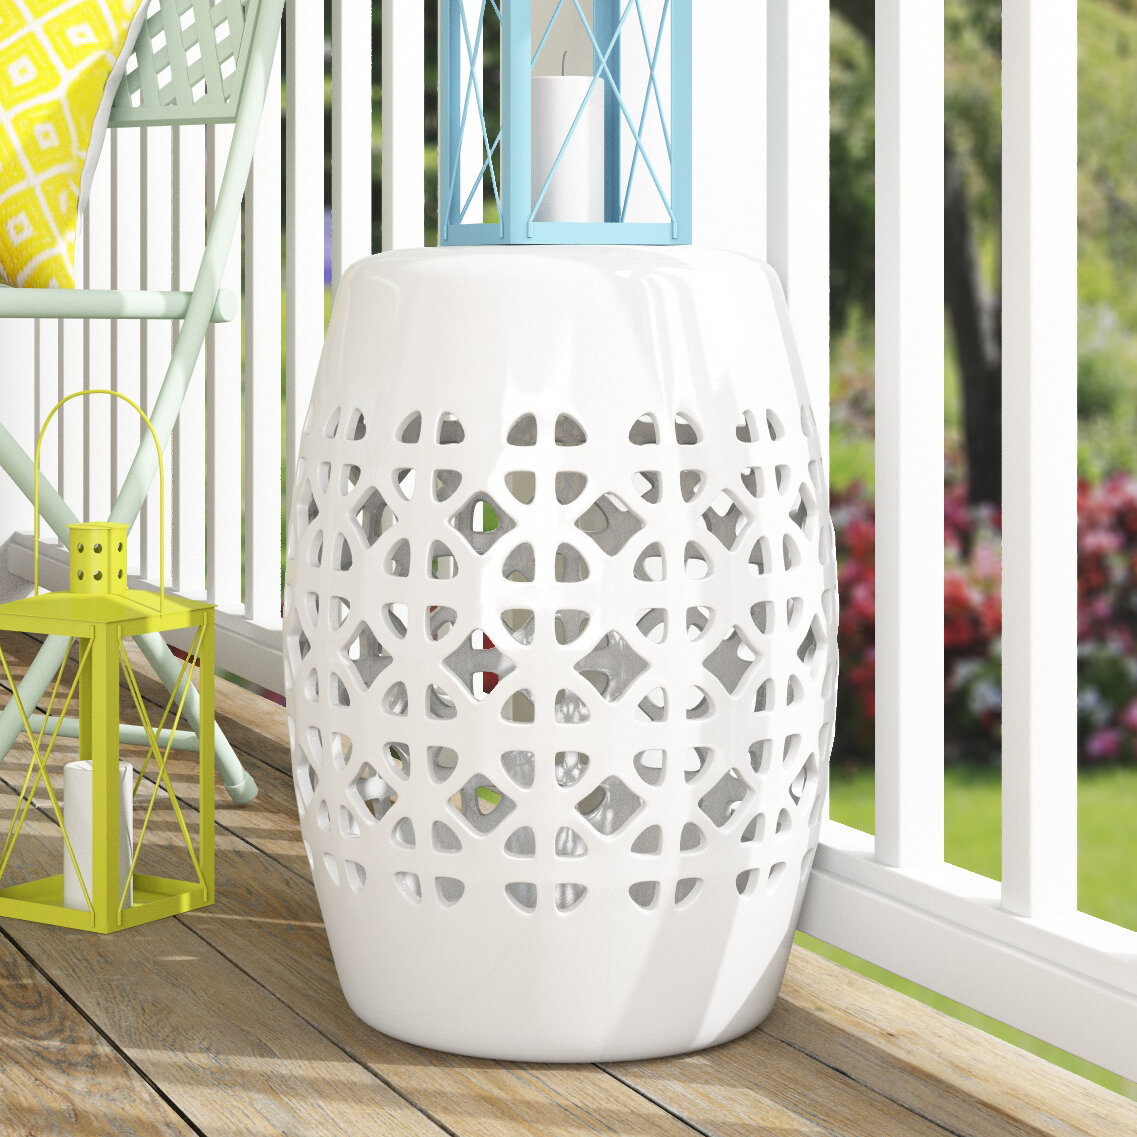 Dreyer Ceramic Garden Stool With Harwich Ceramic Garden Stools (View 6 of 25)